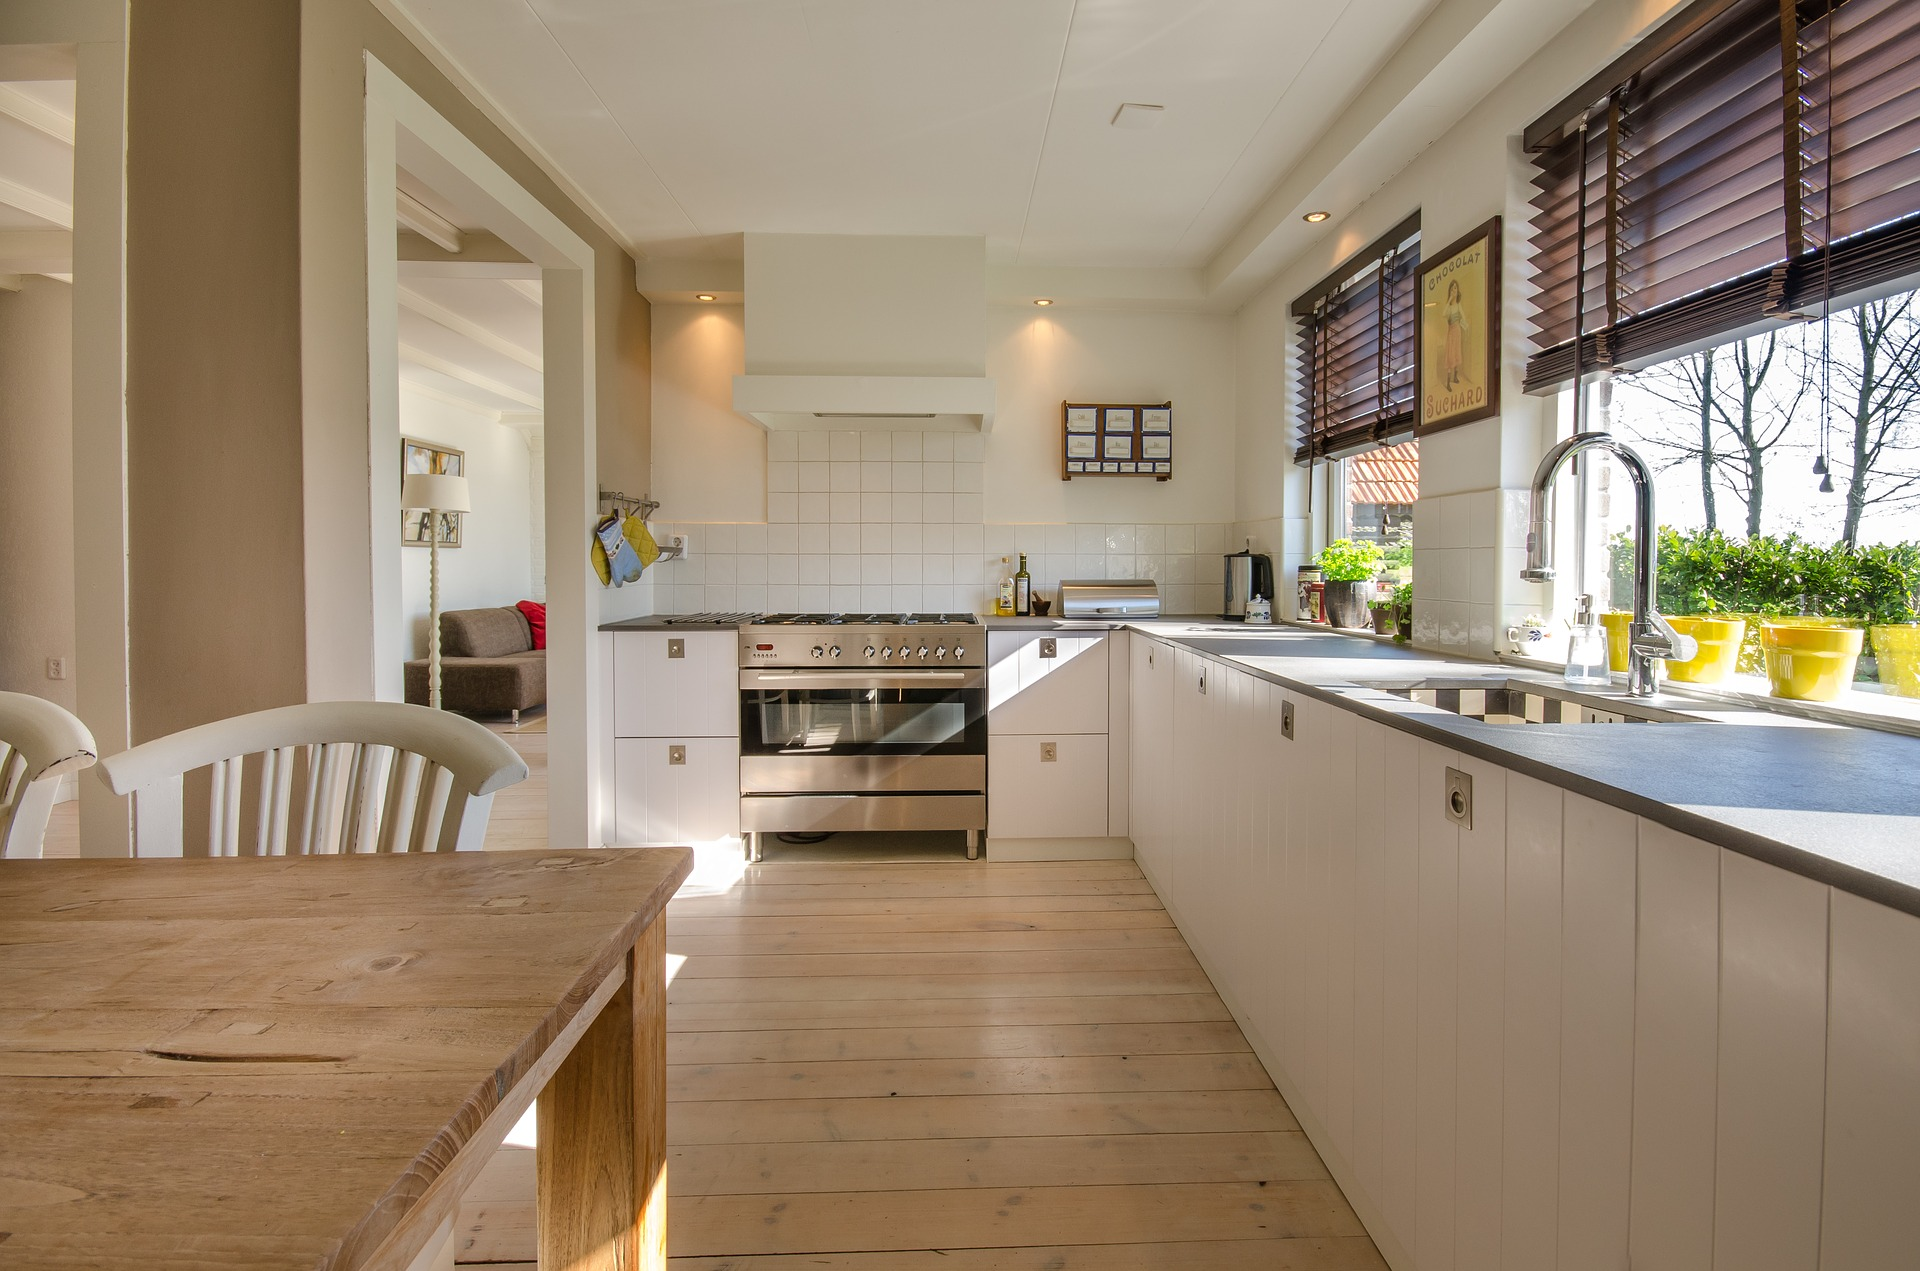 Make The Most Of Your pembroke, ma Kitchen Space! 7 Time-tested Organizing Tips